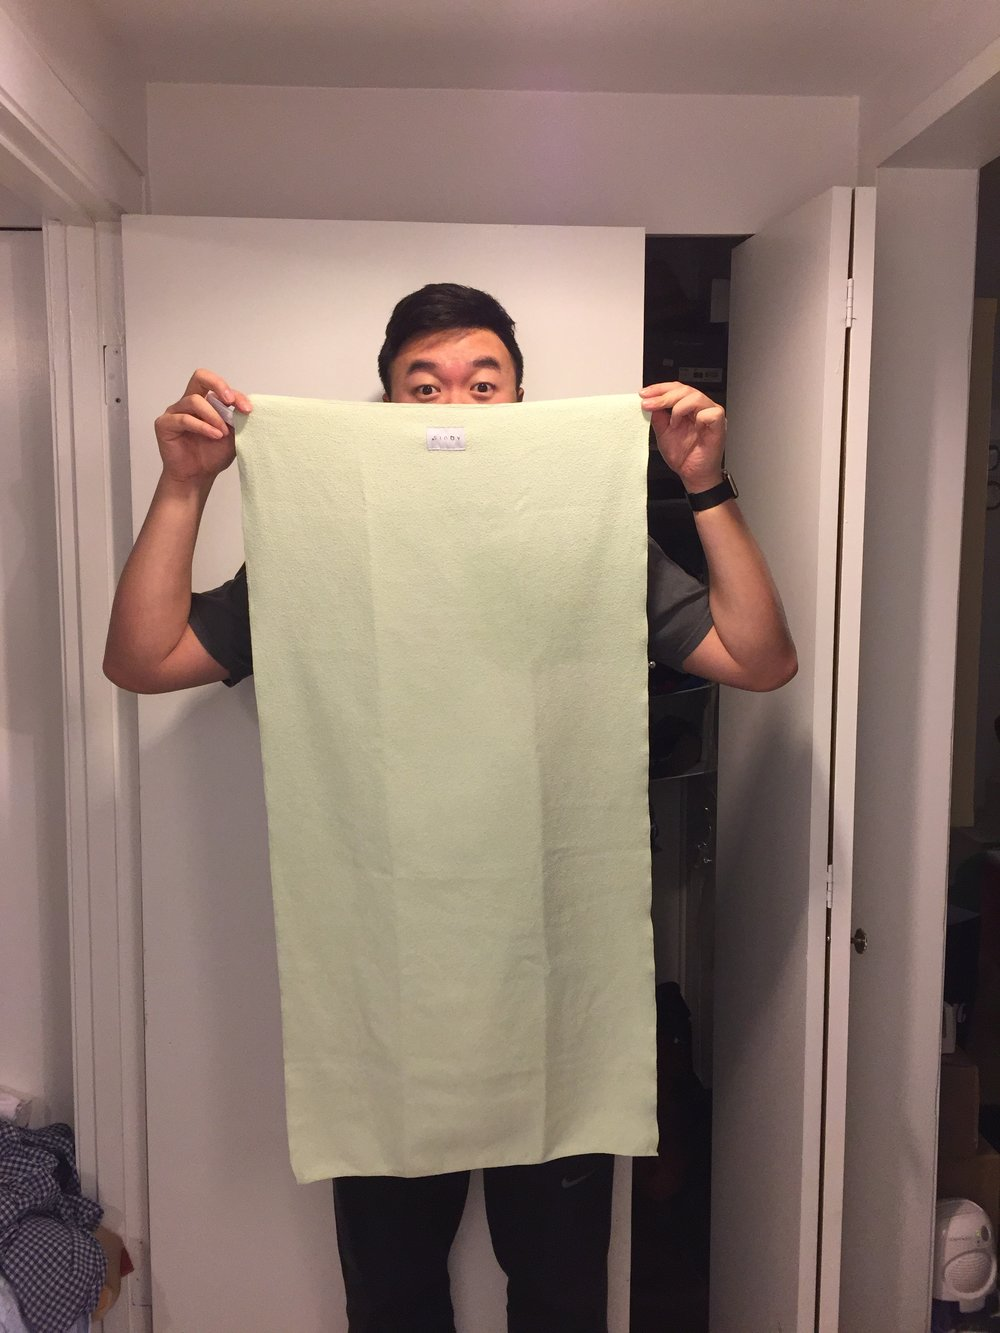 Size of the towel in comparison to my height.